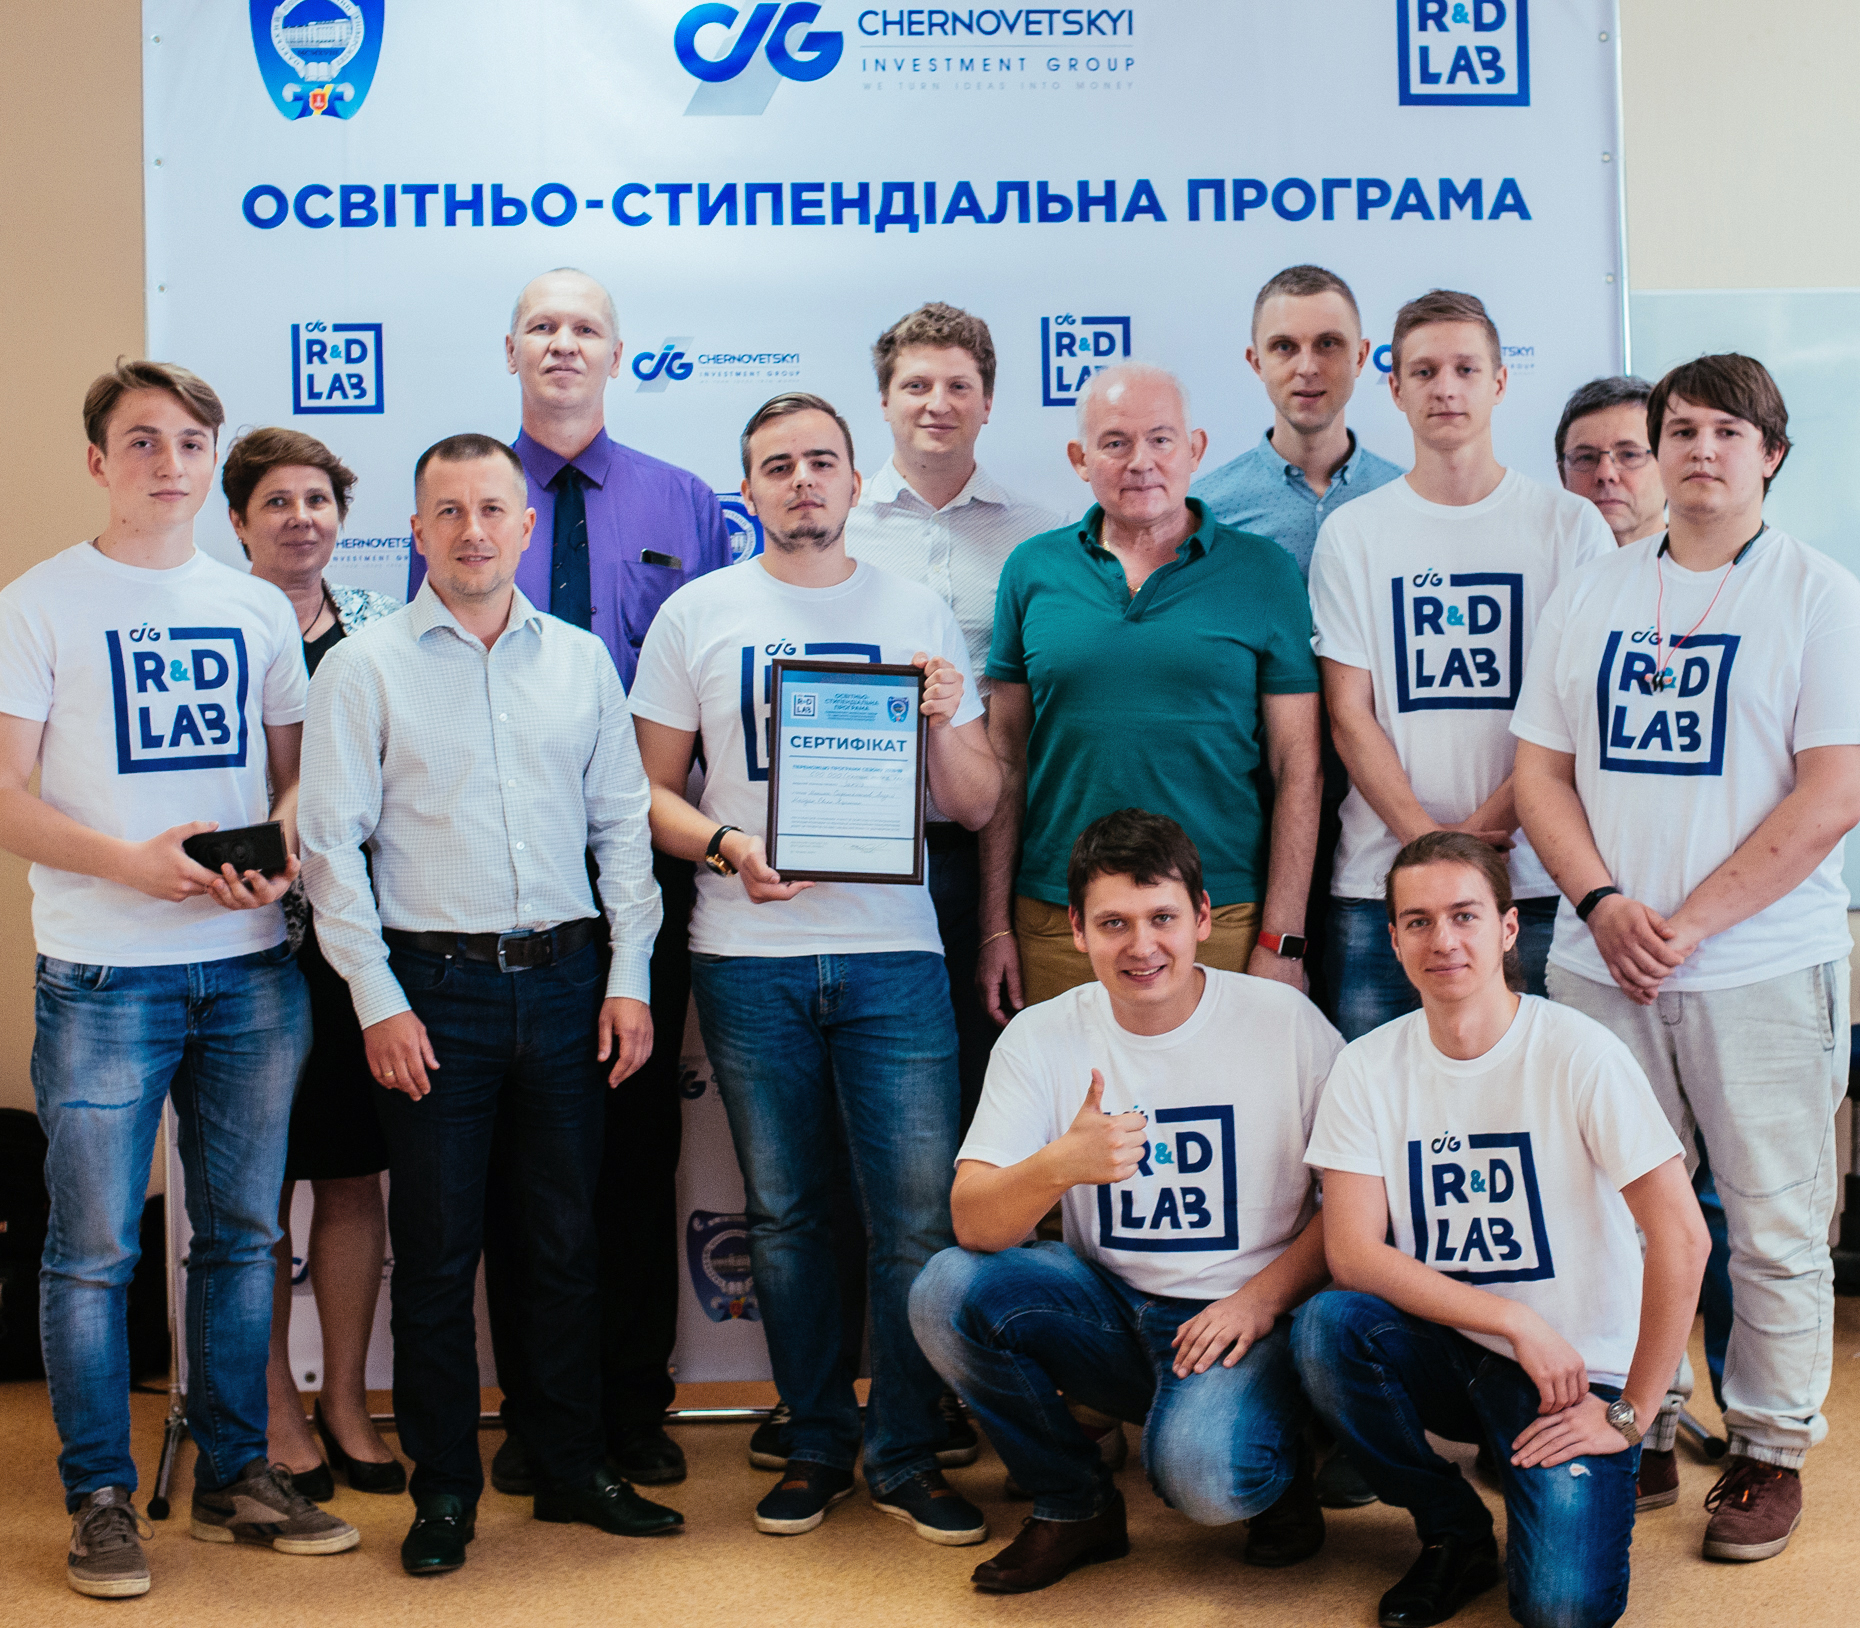 CIG R&D Lab: The Team of Developers of Virtual Assistant won in the second season in Odessa Polytechnic Institute